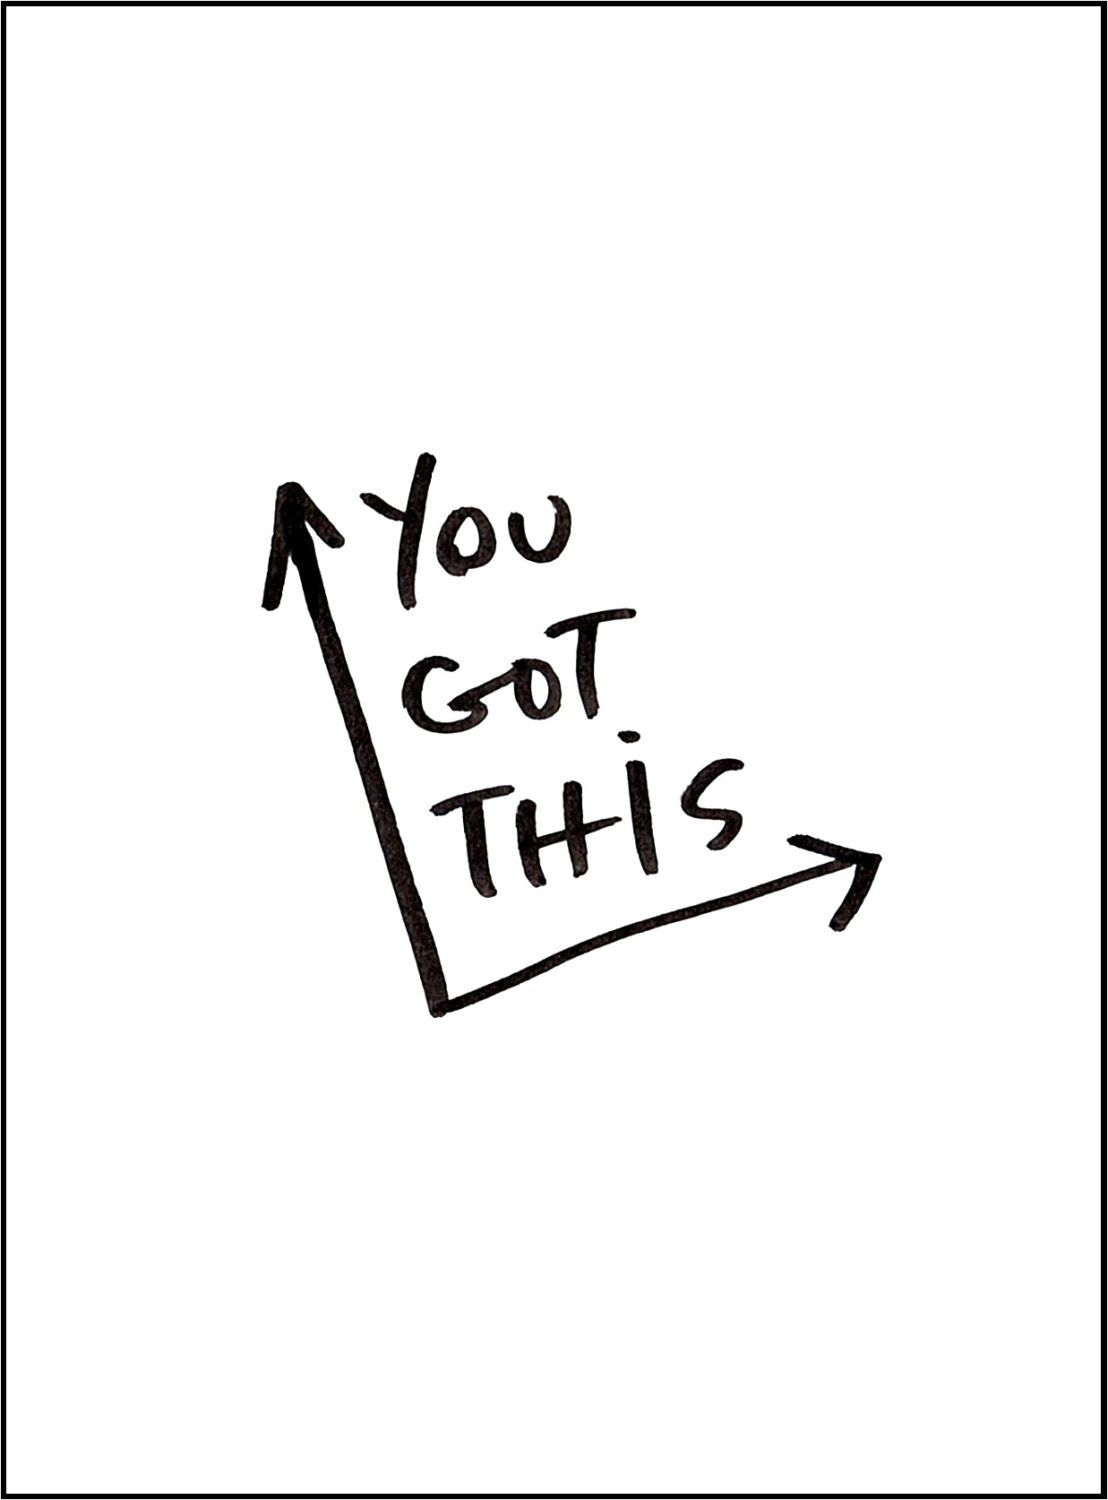 Printable Motivational Art, Wall Decor, Print, You got this, You can do it, Art Prints, Hand lettering, Wall Art Prints, Black And White by SideSandwich on Etsy